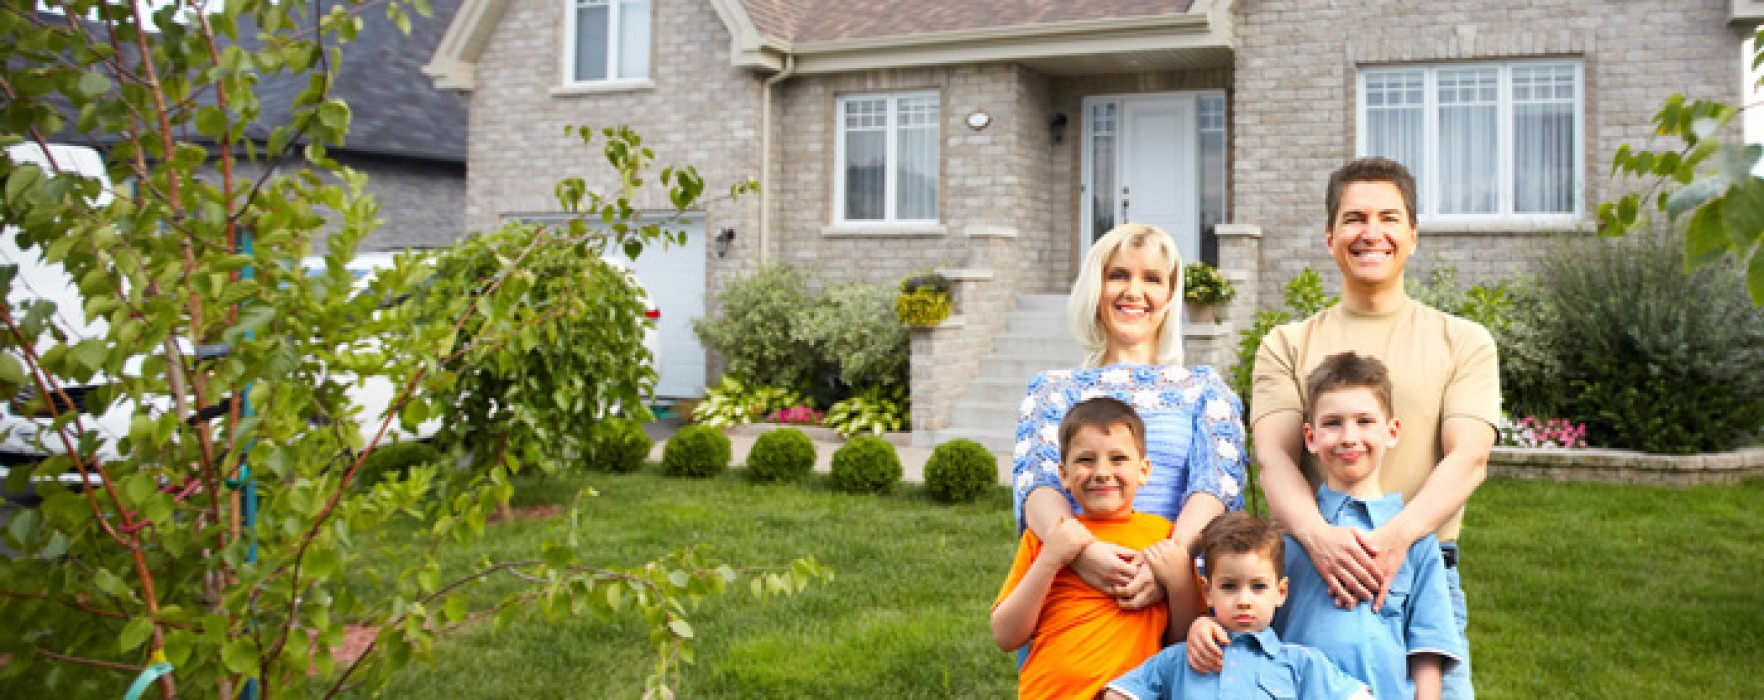 Closing on a Home Purchase